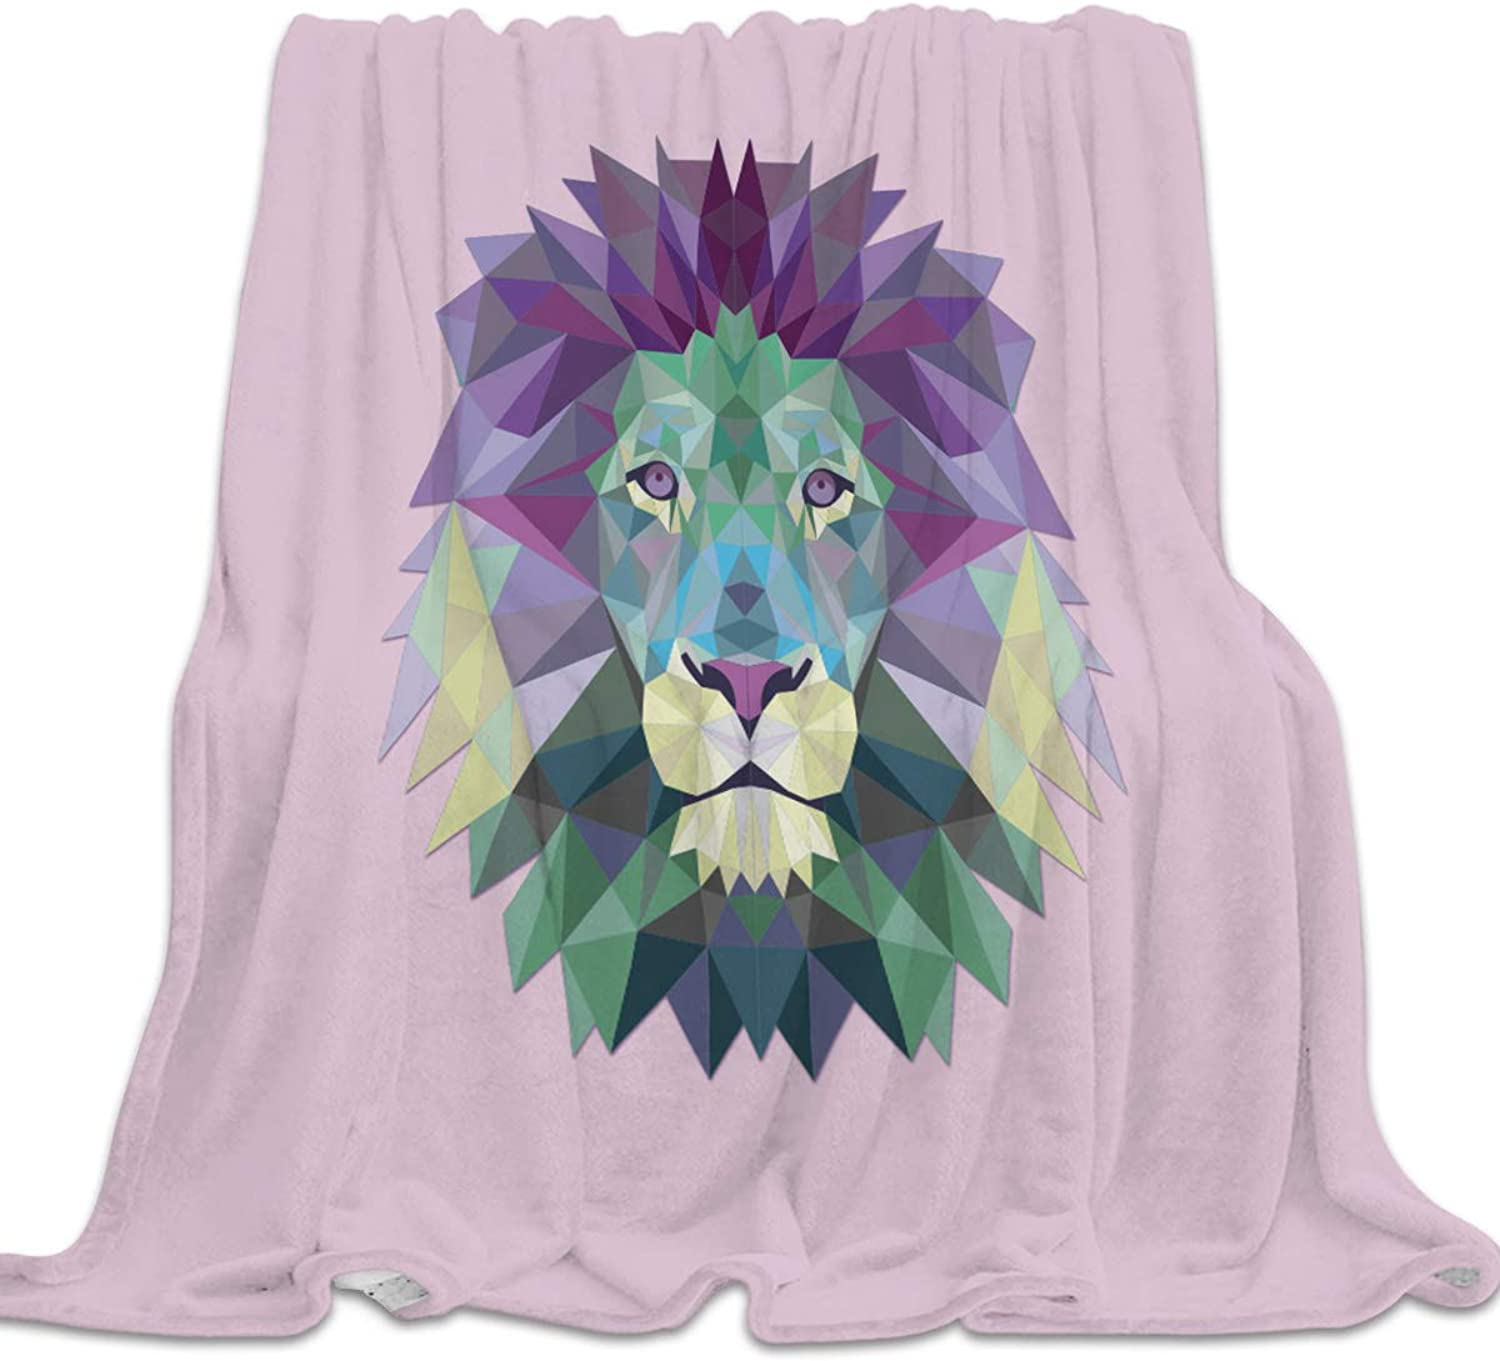 Clouday Flannel Fleece Bed Blanket Soft ThrowBlankets for Kids Girls Boys,colorful Lion Head Lattice Pattern,Lightweight Blankets for Bedroom Living Room Sofa Couch Home Decor,49x59Inch